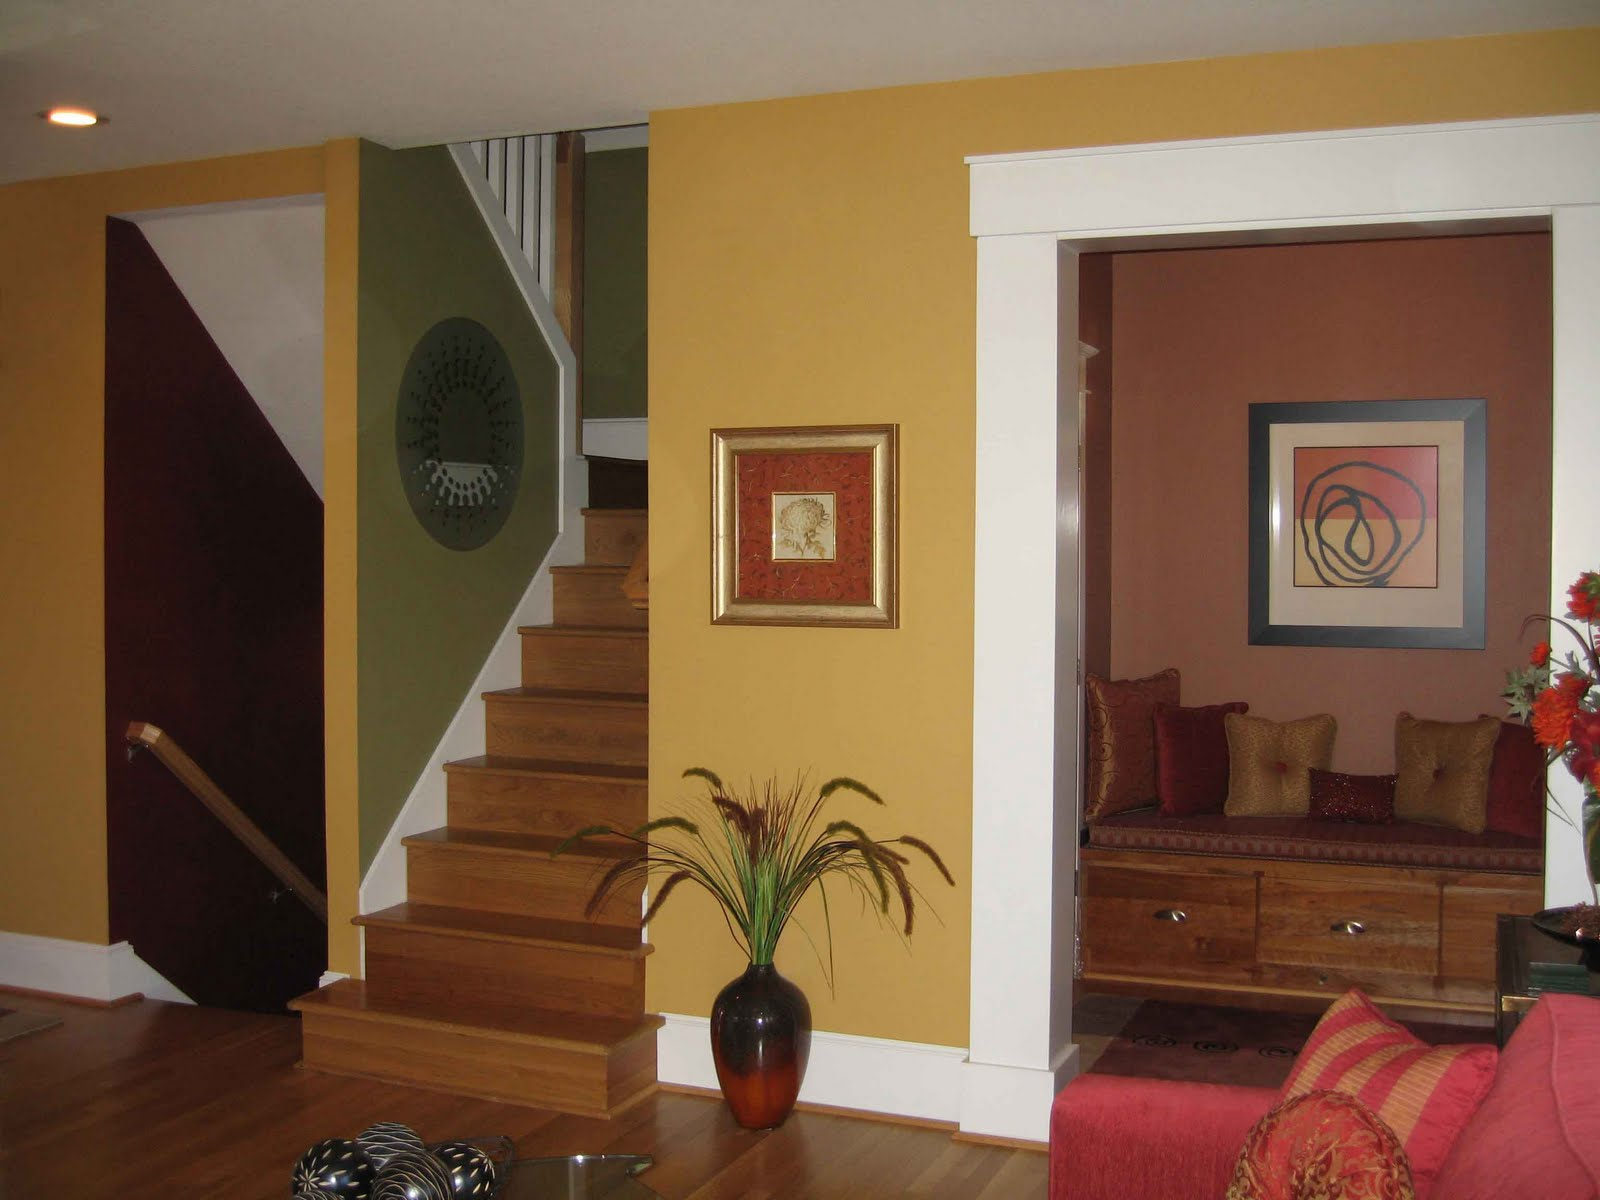 Interior spaces interior paint color specialist in Interior colour design